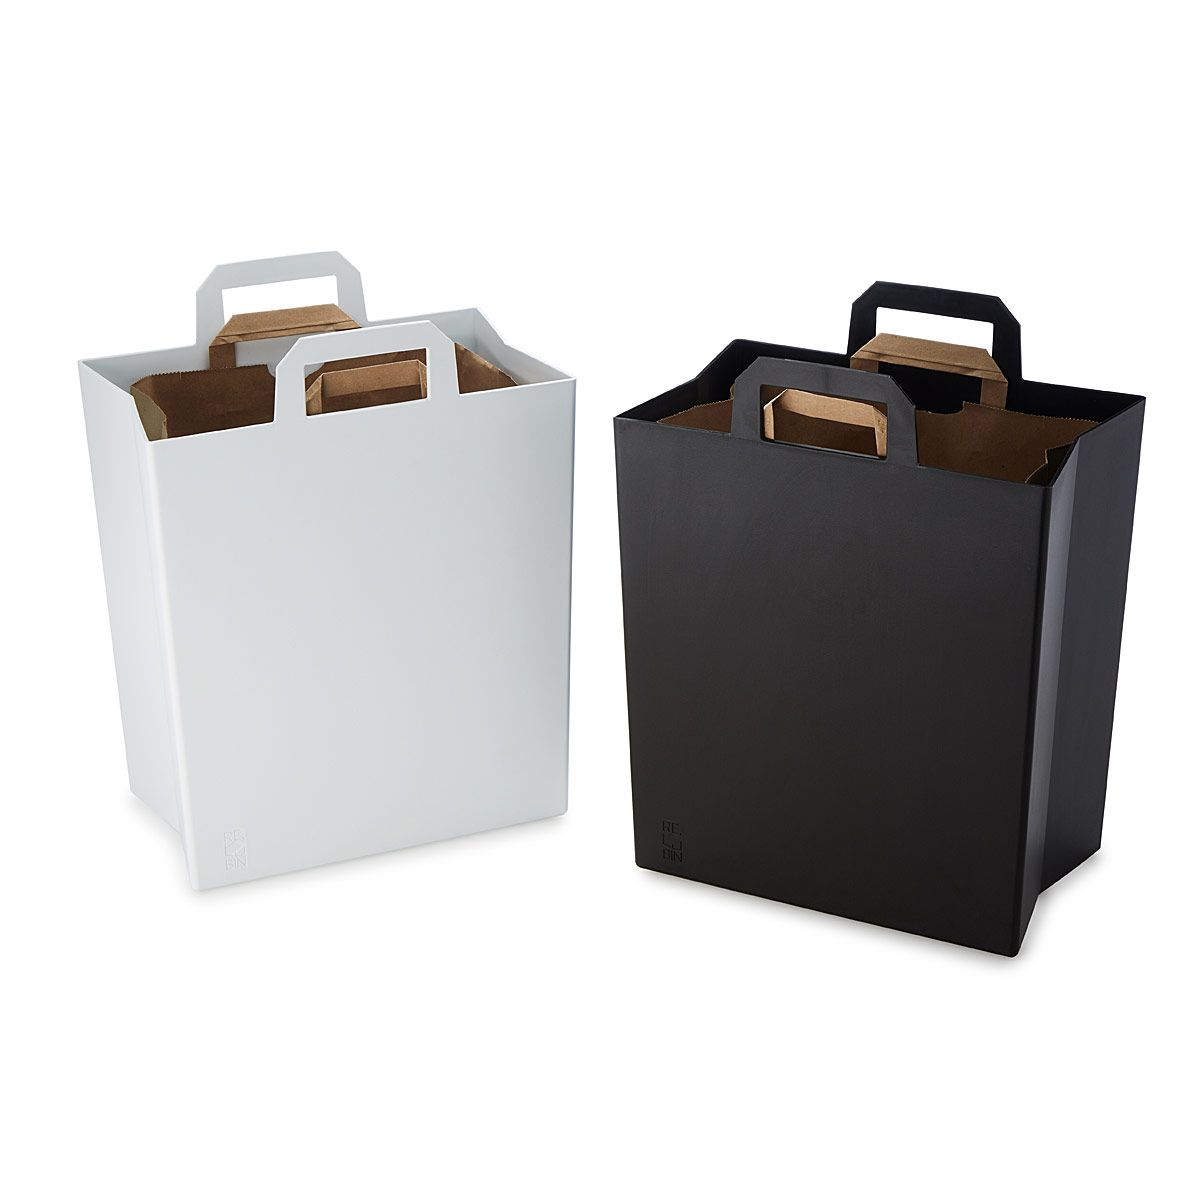 This Clever Recycling Bin Is Designed To Fit Paper Grocery Sacks Recycling Bins Kitchen Recycling Bins Recycling